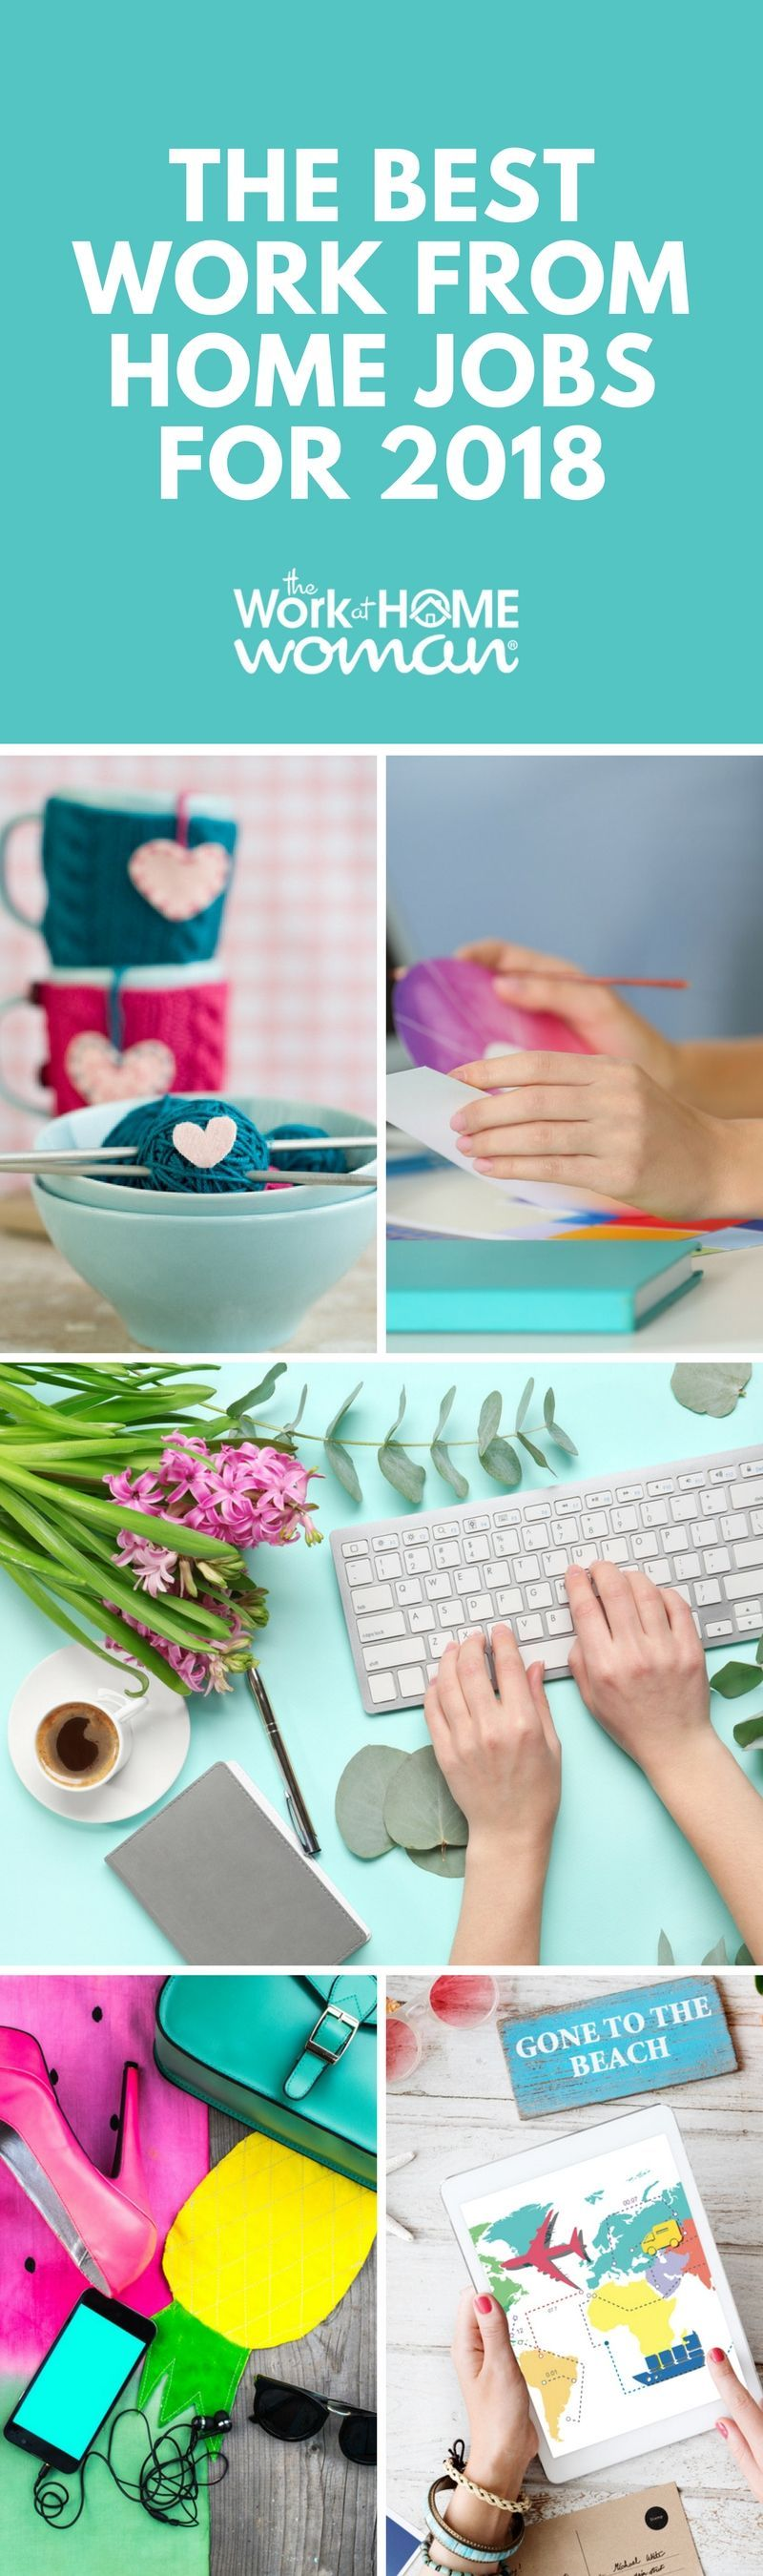 List Of Small Business Ideas From Home Part - 48: This List Is Amazing! There Are TONs Of Work At Home Jobs Small Business  Ideas